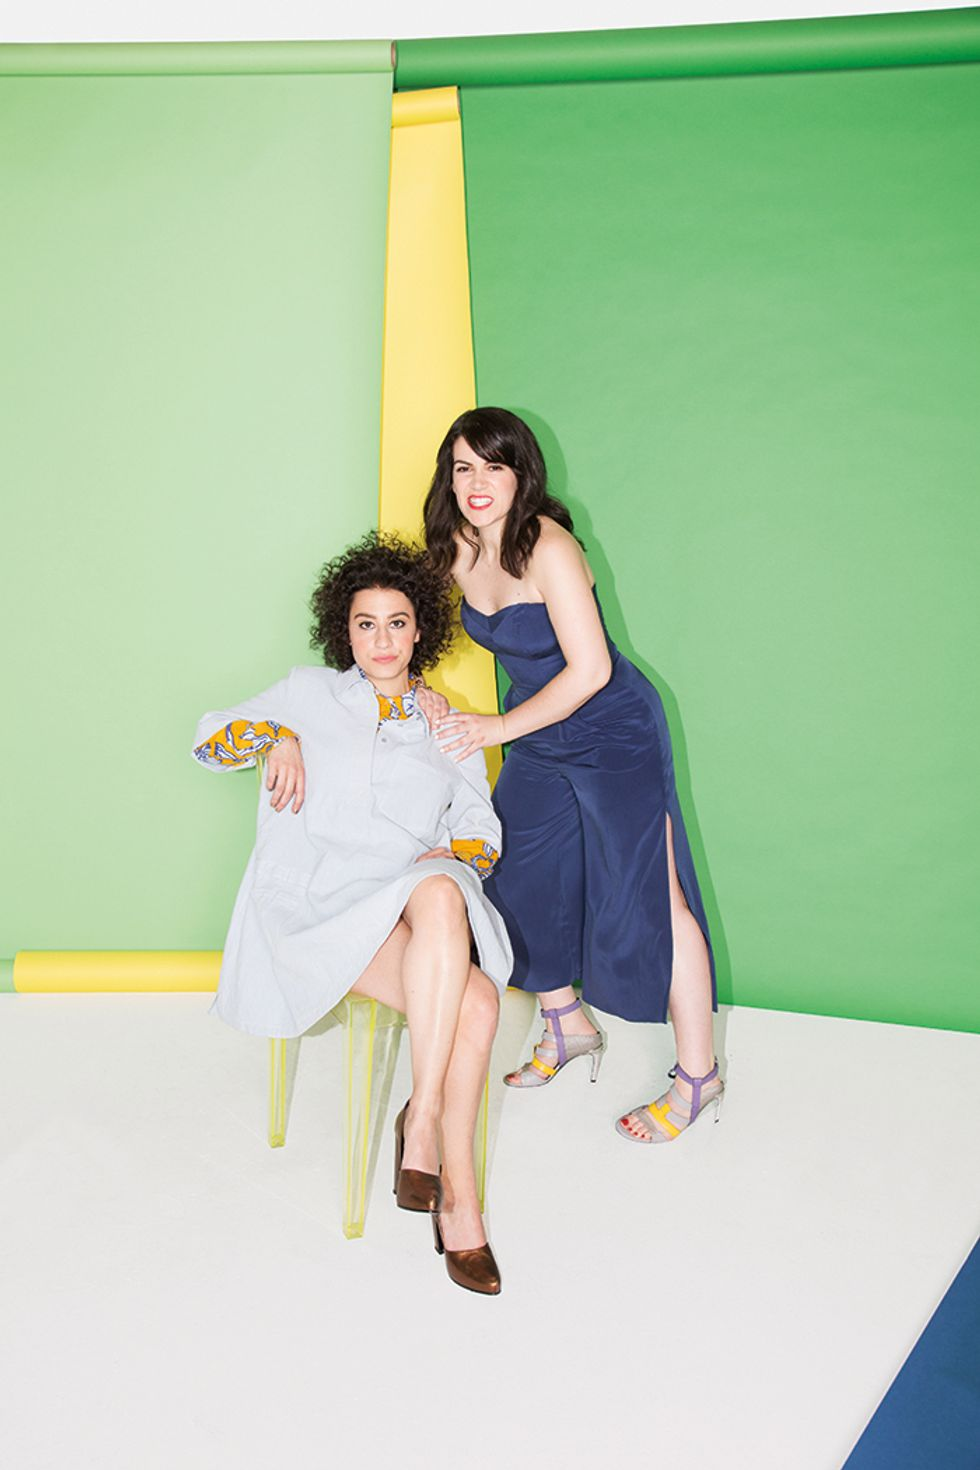 Yas Kweens! Broad City's Abbi Jacobson and Ilana Glazer Have Nothing to Lose